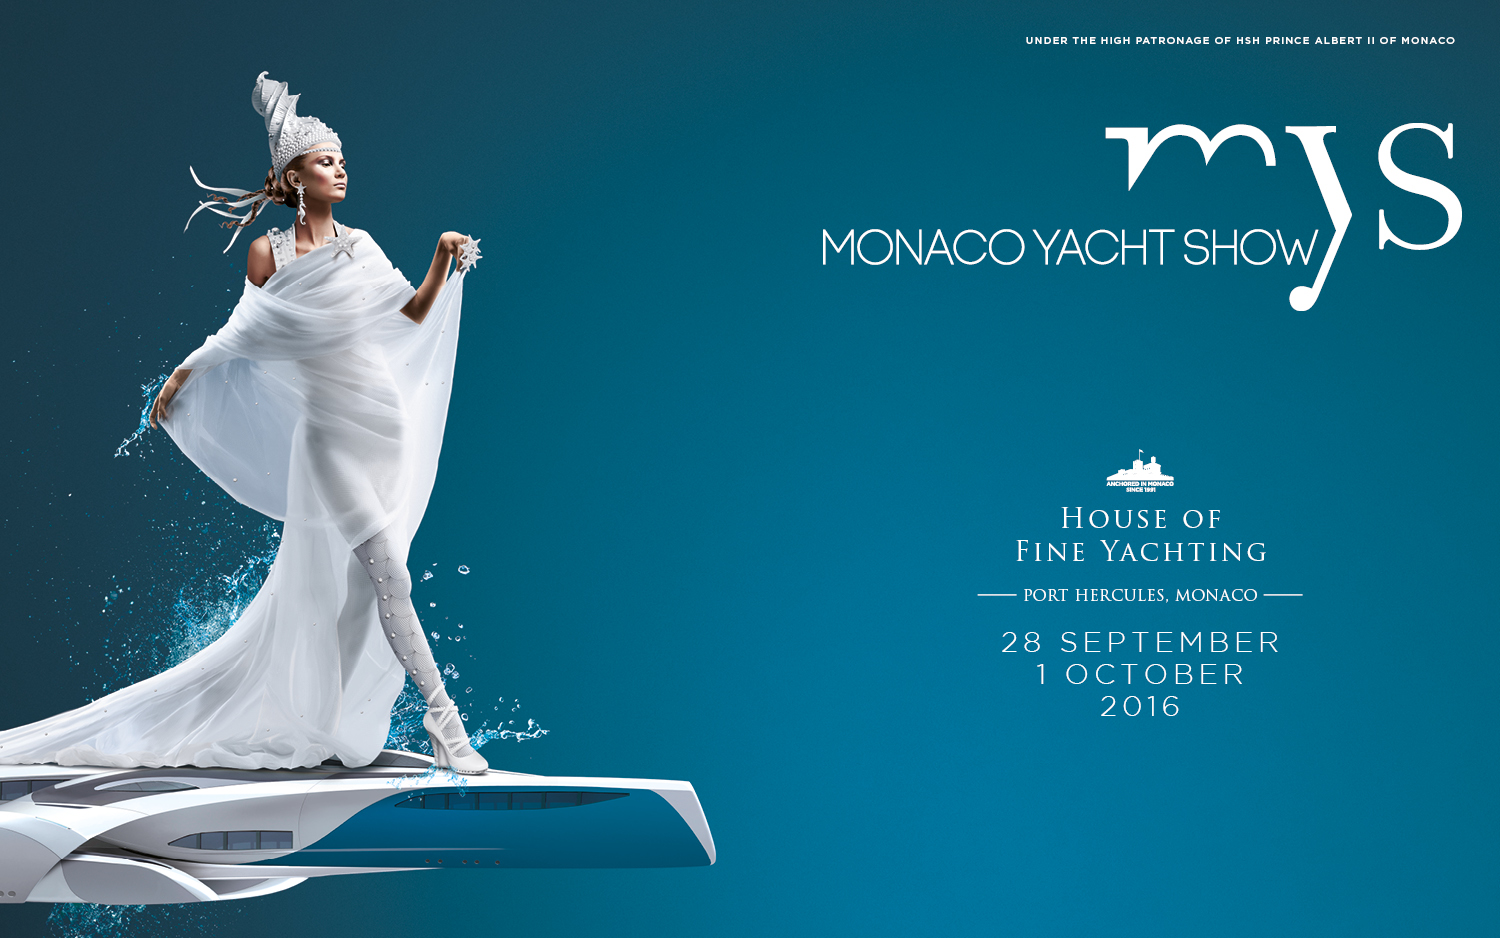 Bbq Islands For Sale >> The Monaco Yacht Show 2016 | Worth Avenue Yachts